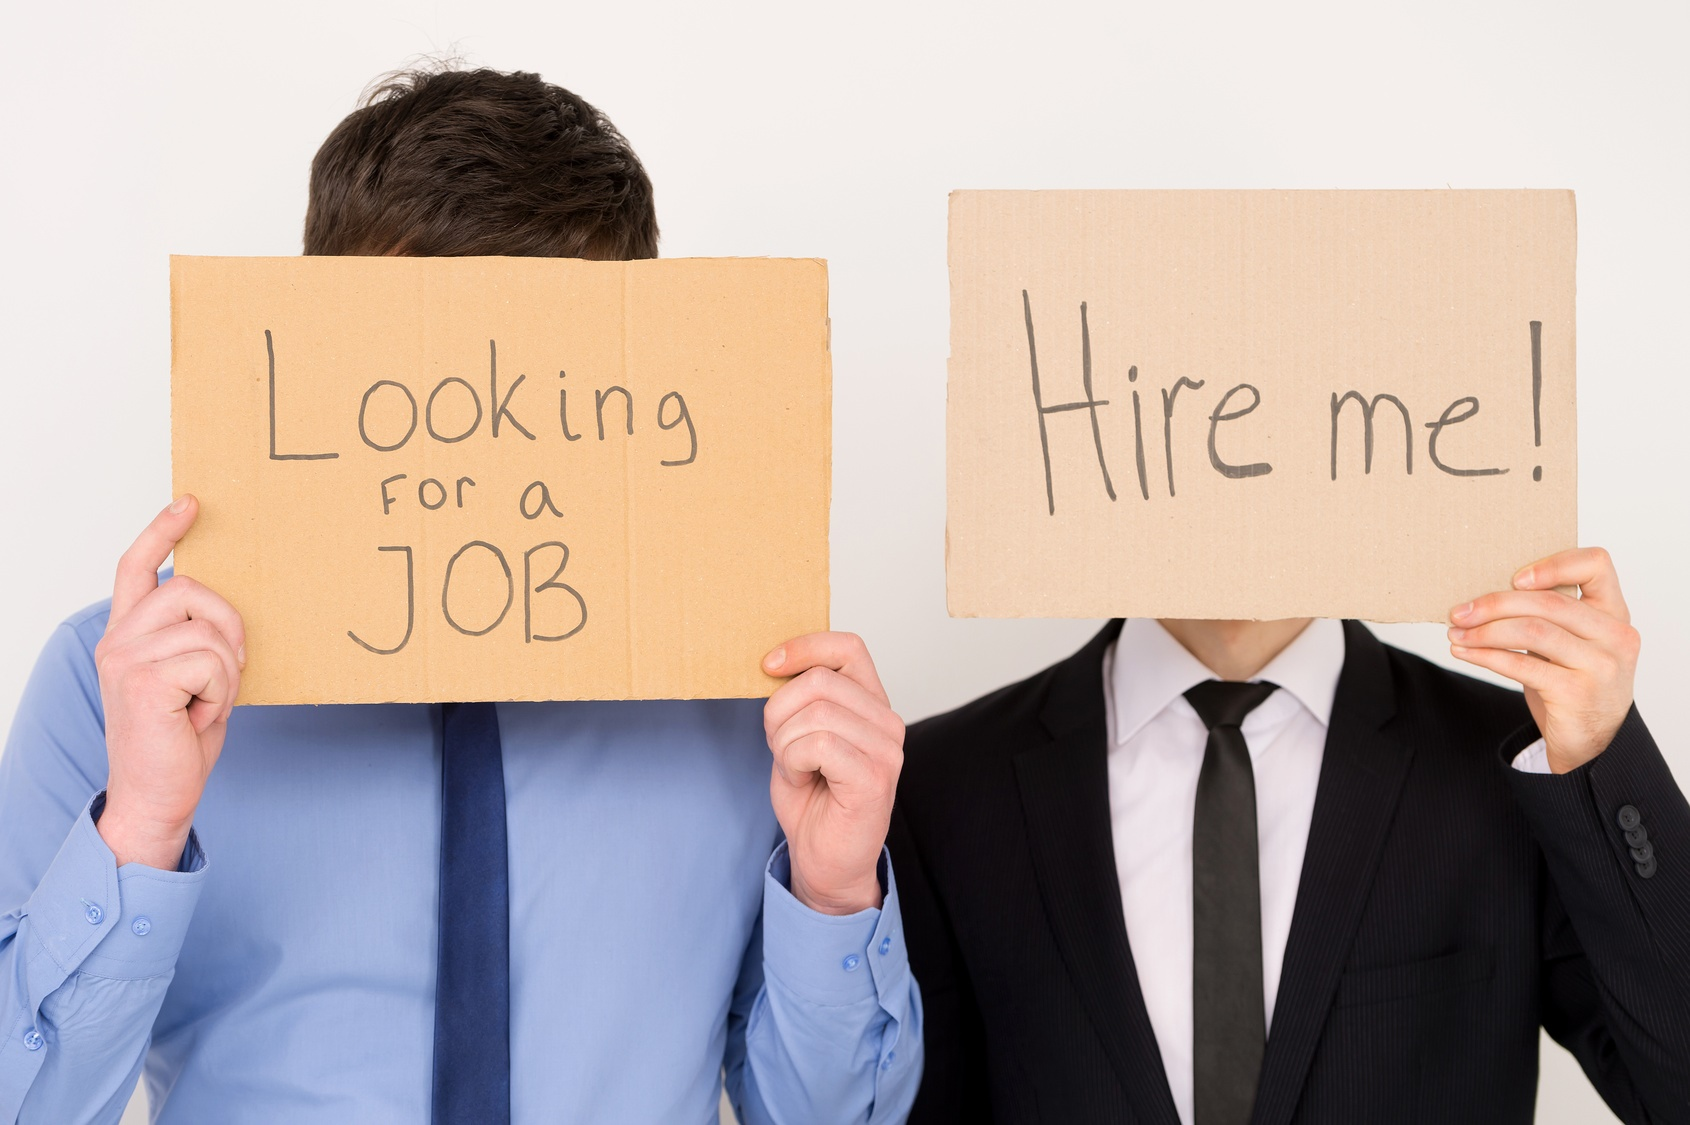 Unemployment Workers. Unemployed office workers holding cardboard signs job hunting